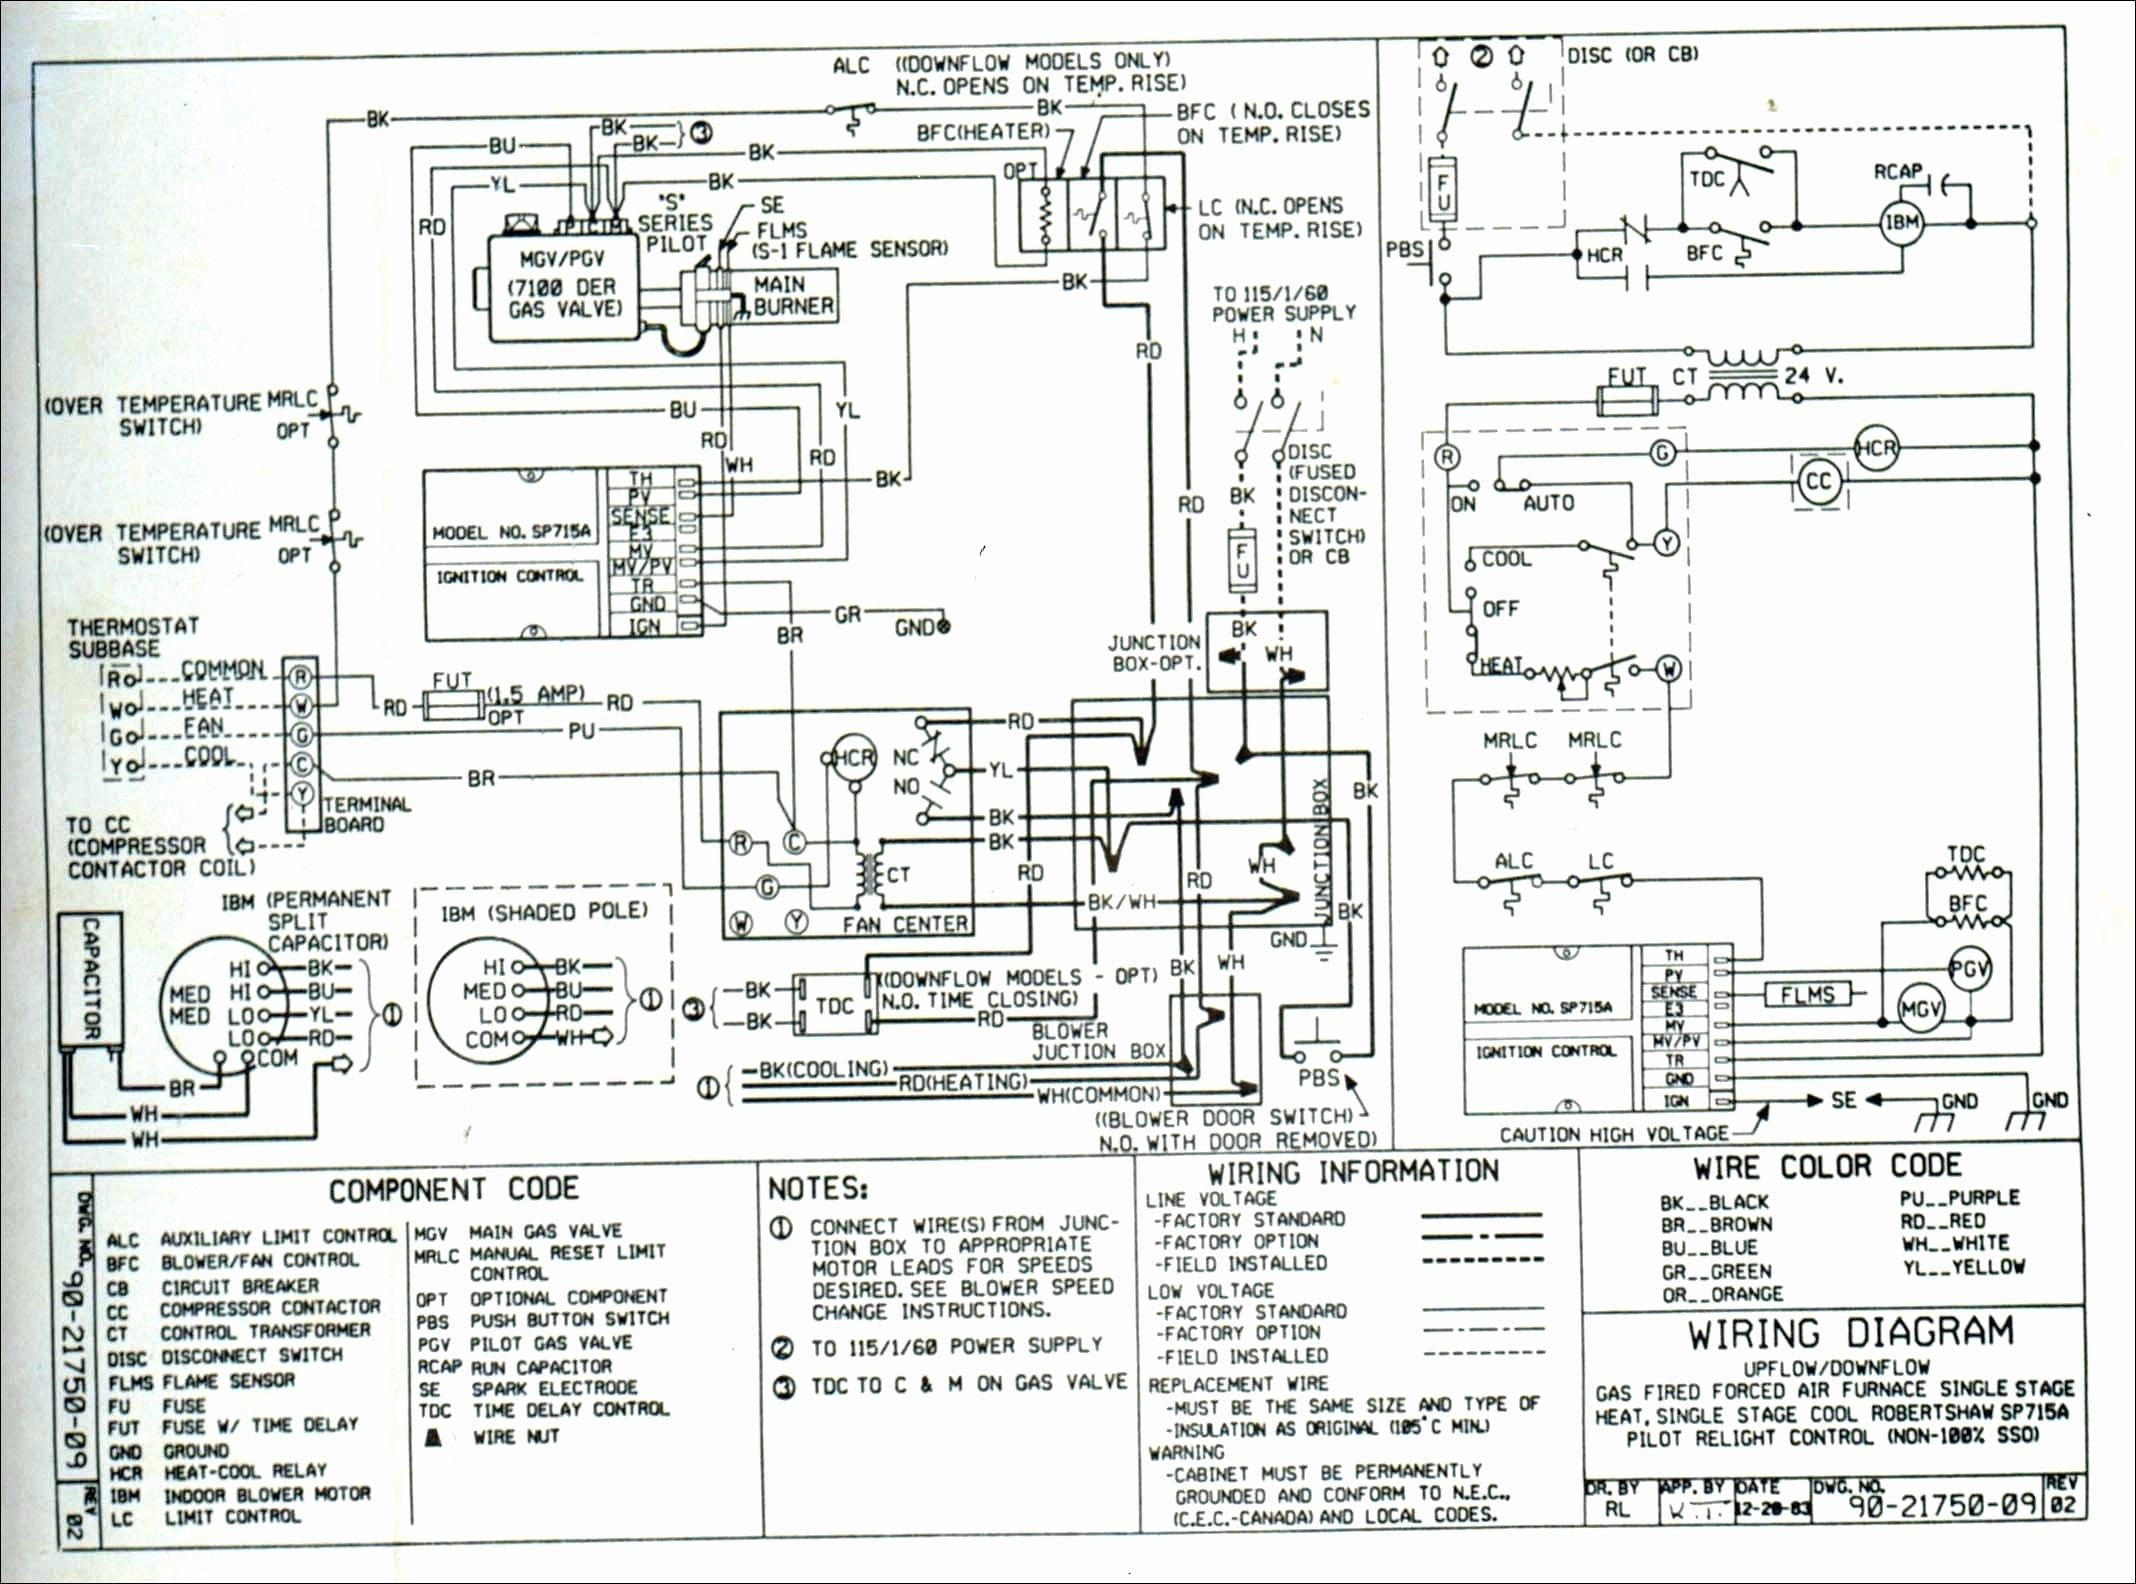 Unique Electric Fan Motor Wiring Diagram Pdf Diagram Diagramsample Diagramtemplate Wiringdiagram Diagram Electrical Diagram Diagram Trailer Wiring Diagram